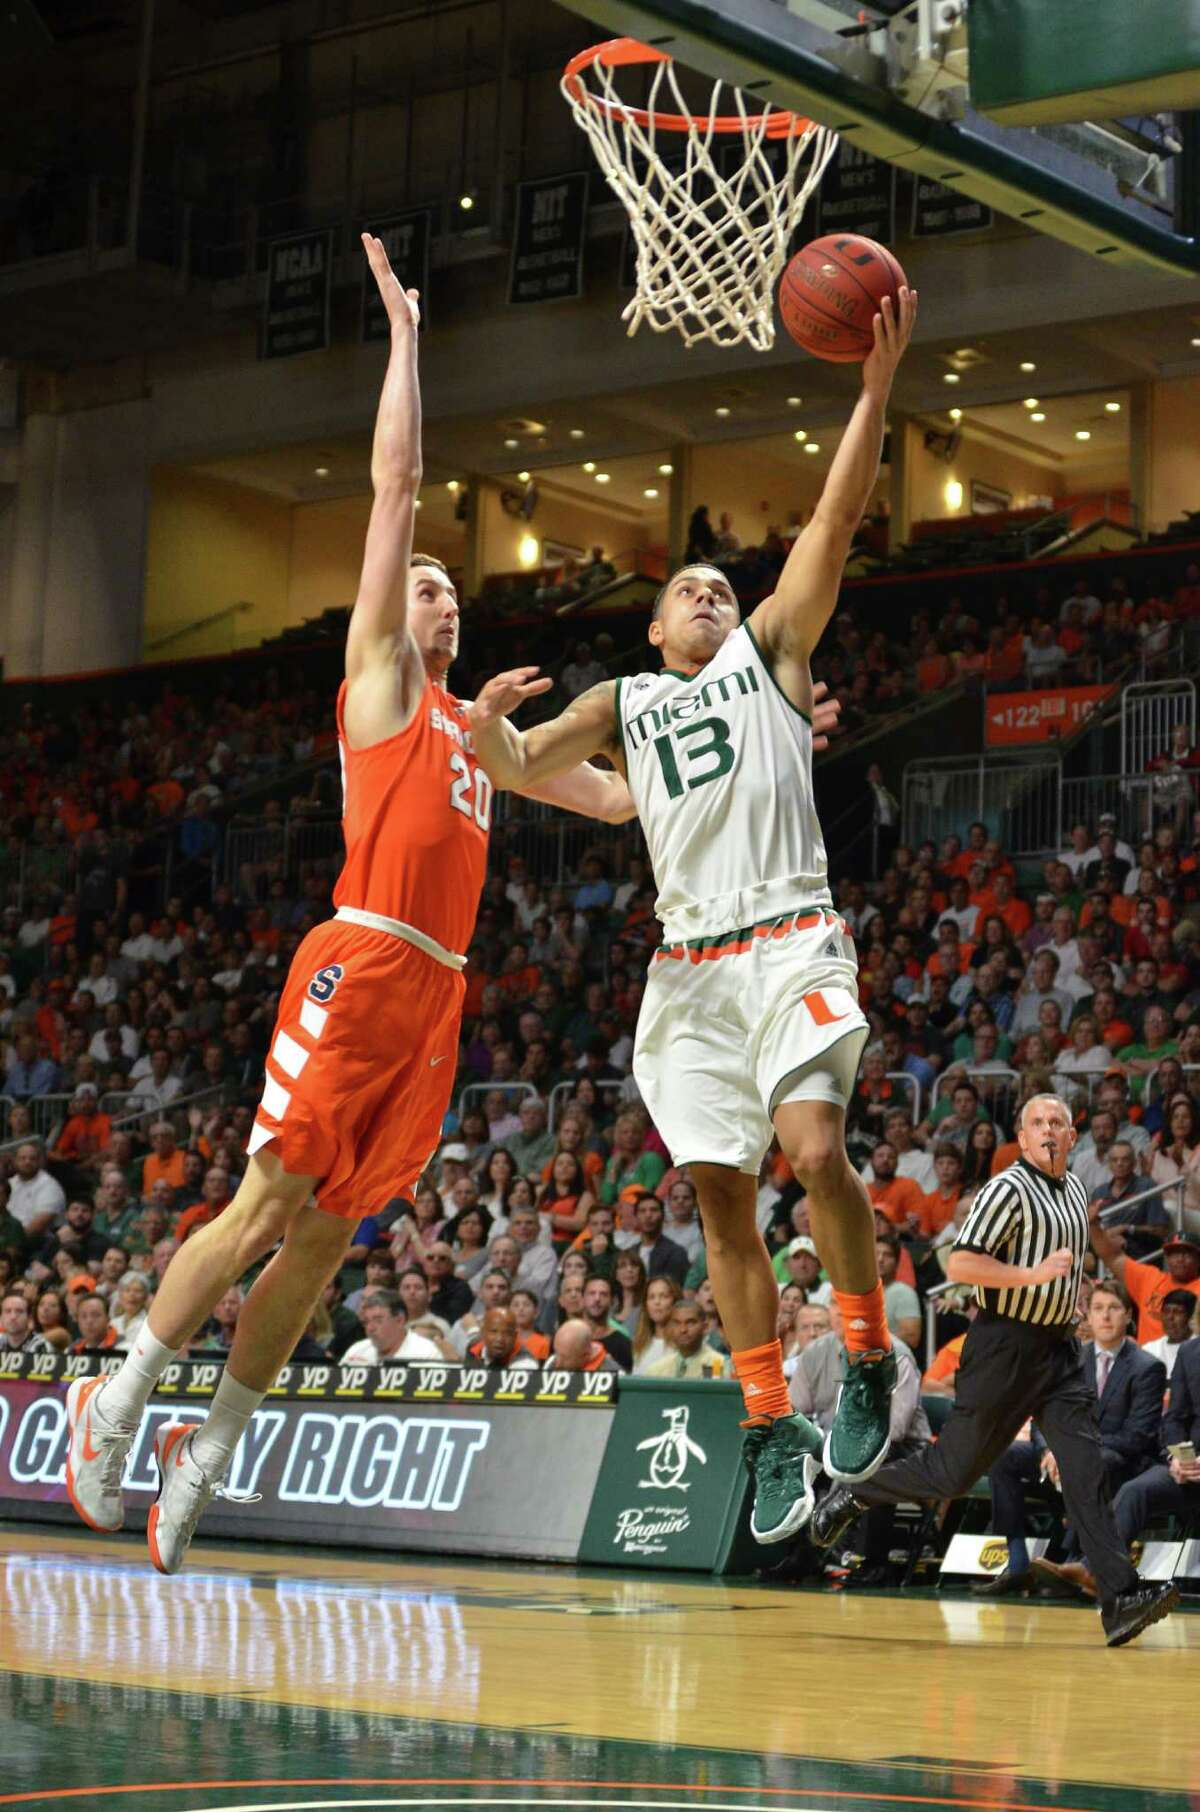 Miami guard Angel Rodriguez goes up for a lay up against Syracuse's Tyler Lydon during the first half of an NCAA college basketball game in Coral Gables, Fla., Saturday, Jan. 2, 2016. (AP Photo/Gaston De Cardenas) ORG XMIT: FLGC103